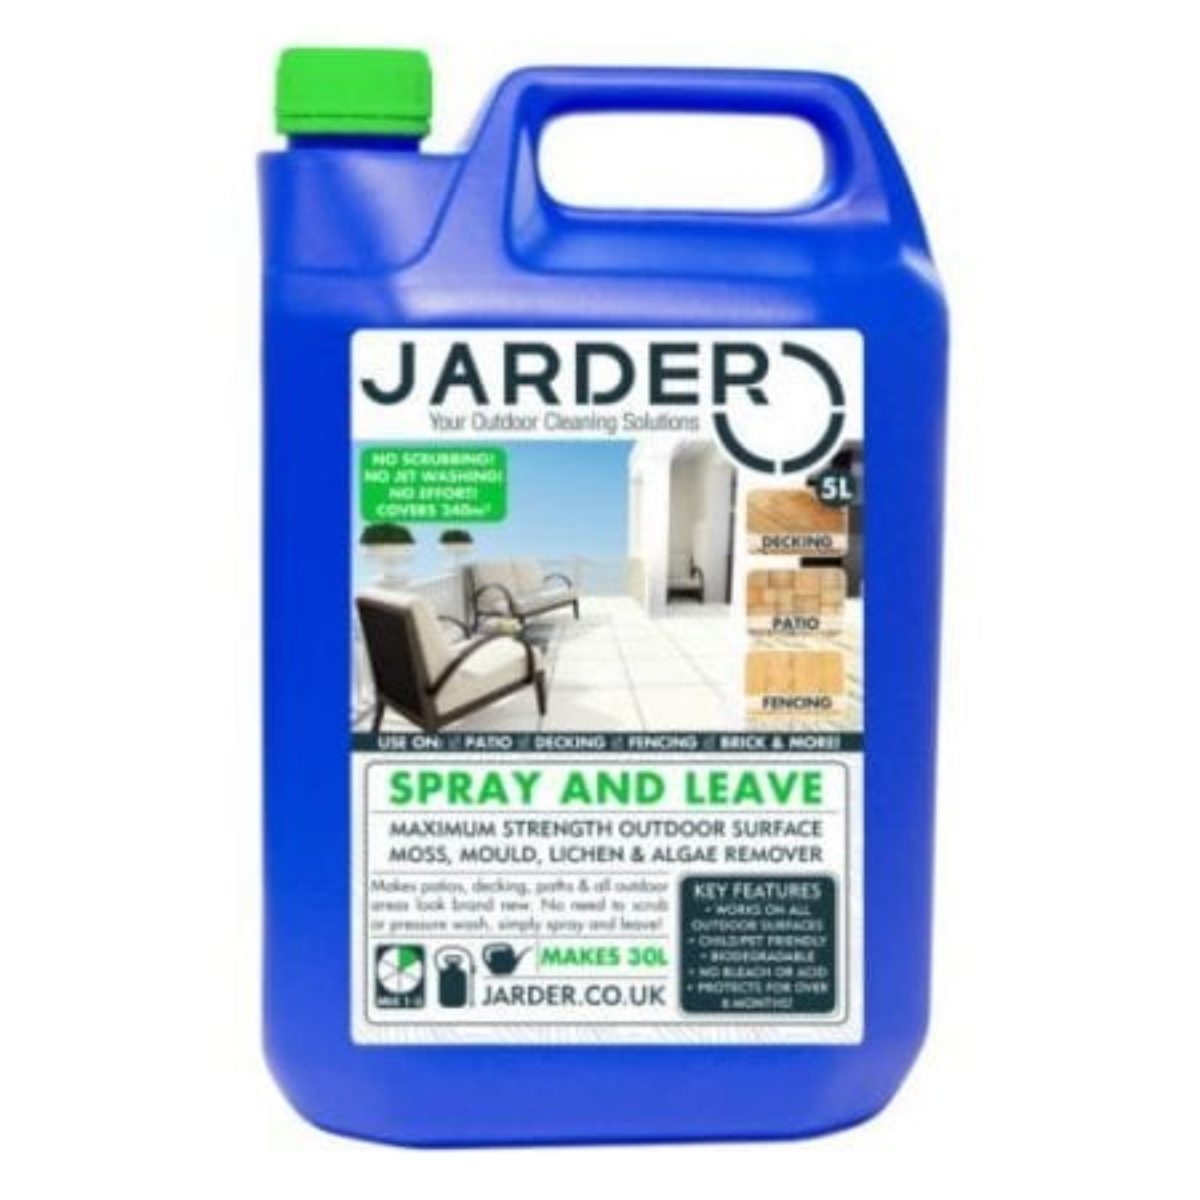 10 Best Patio Cleaner Reviews The Top Rated Models In 2020 within measurements 1200 X 1200